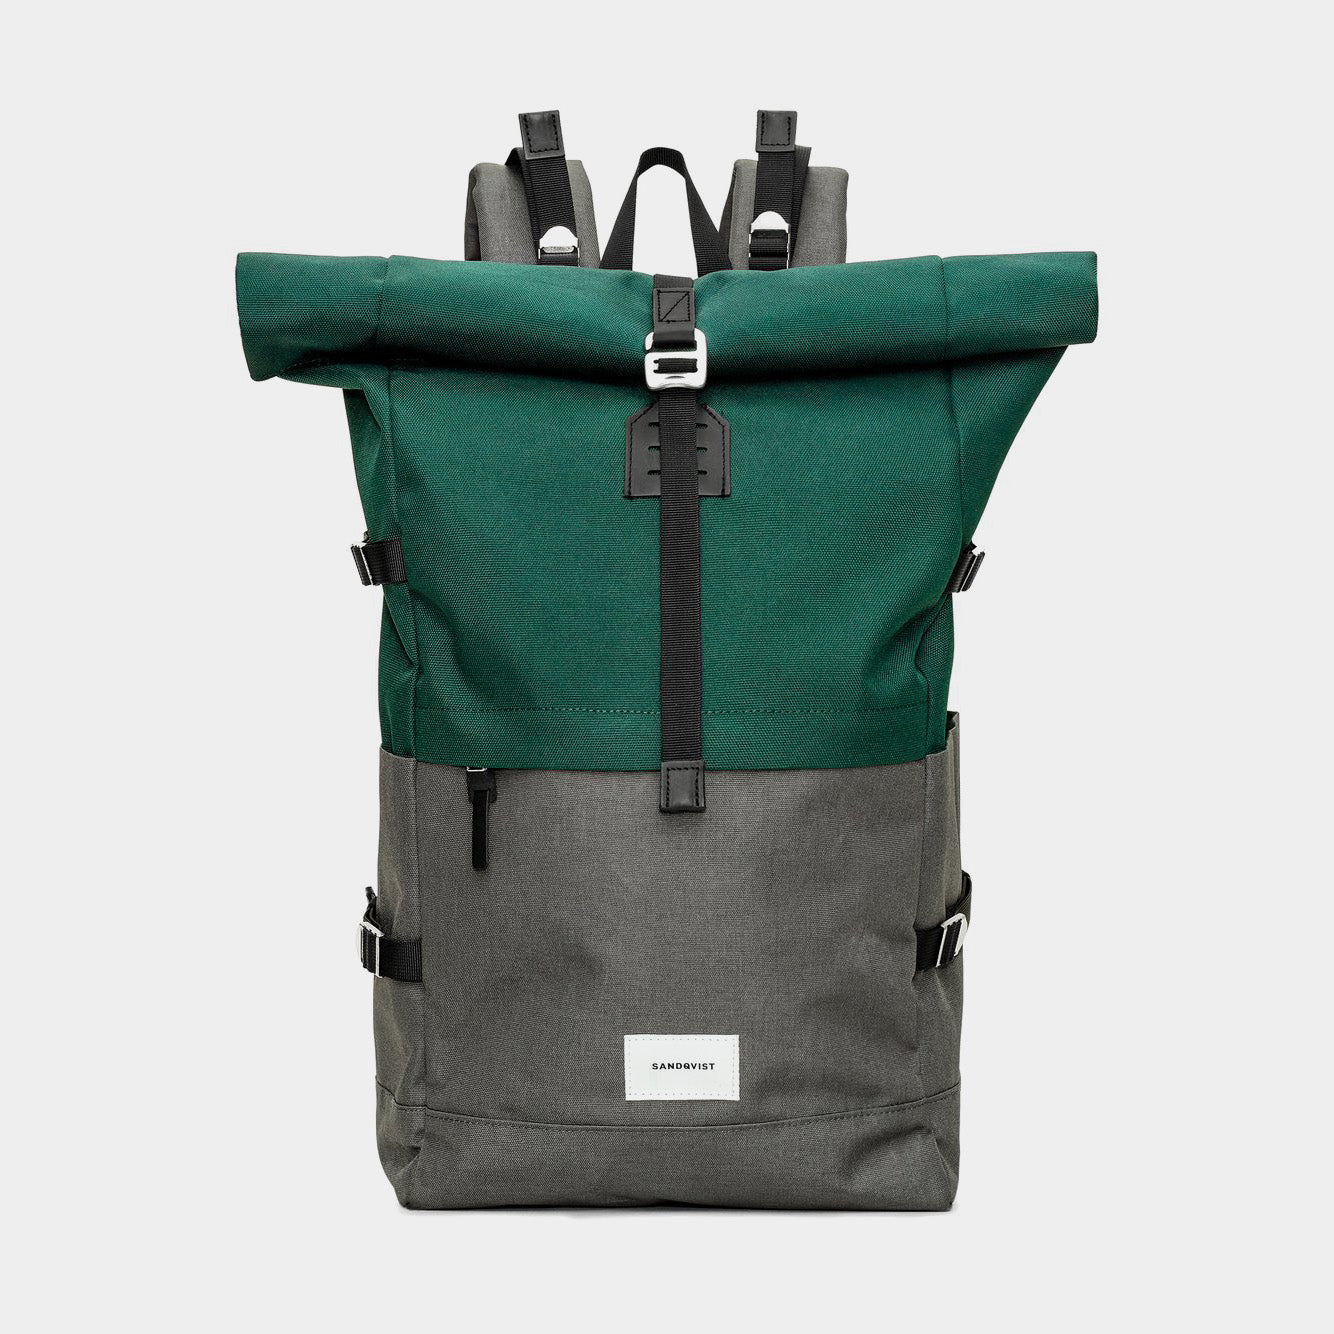 Sandqvist Bernt Backpack - Multi Deep Green/Dark Grey